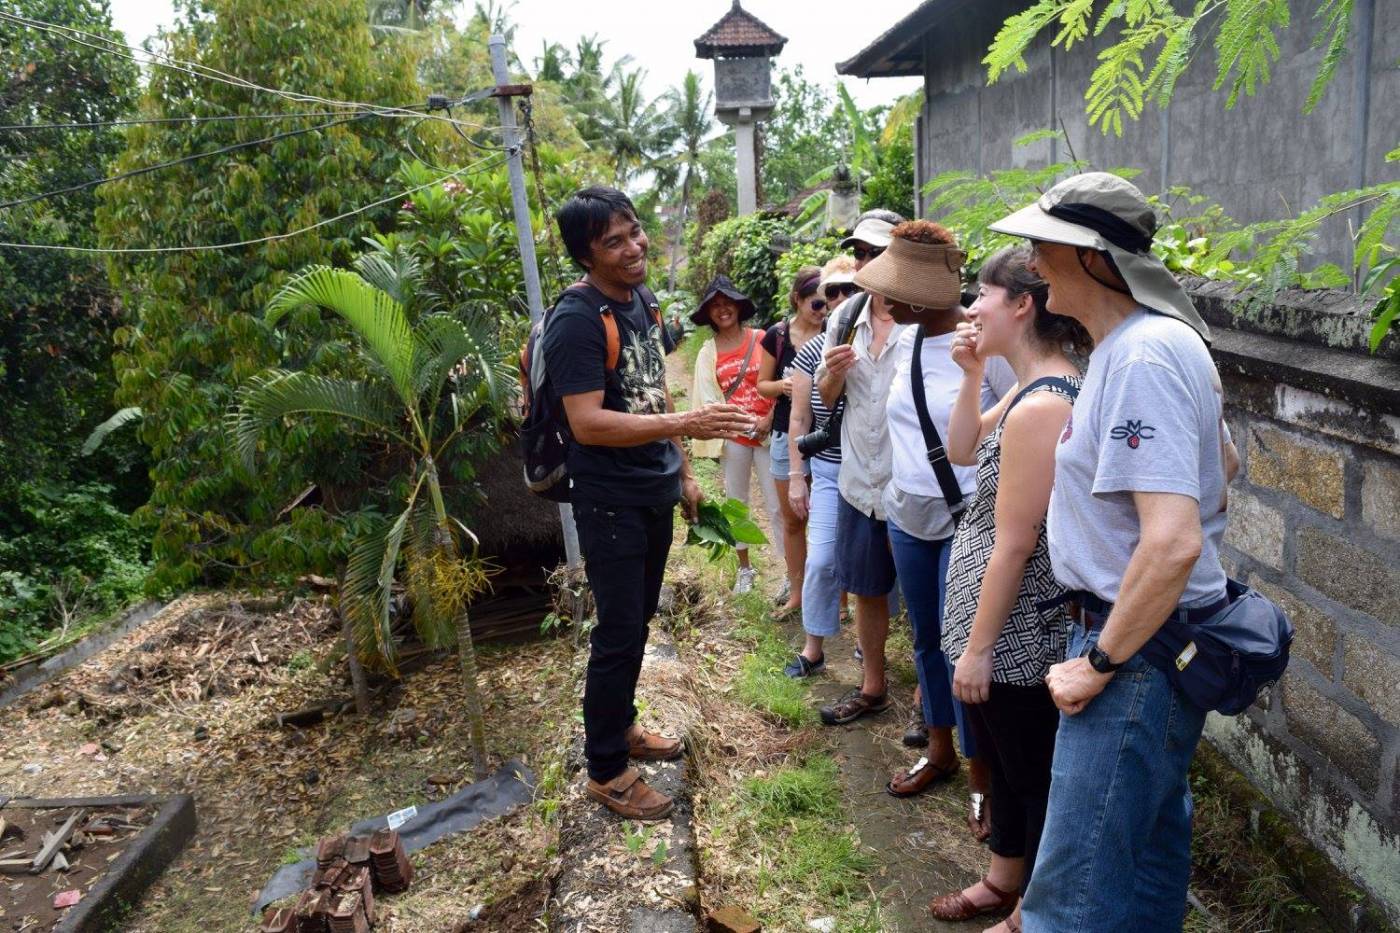 2016 Bali Learning Journey participants on a herb walk in Ubud, Bali